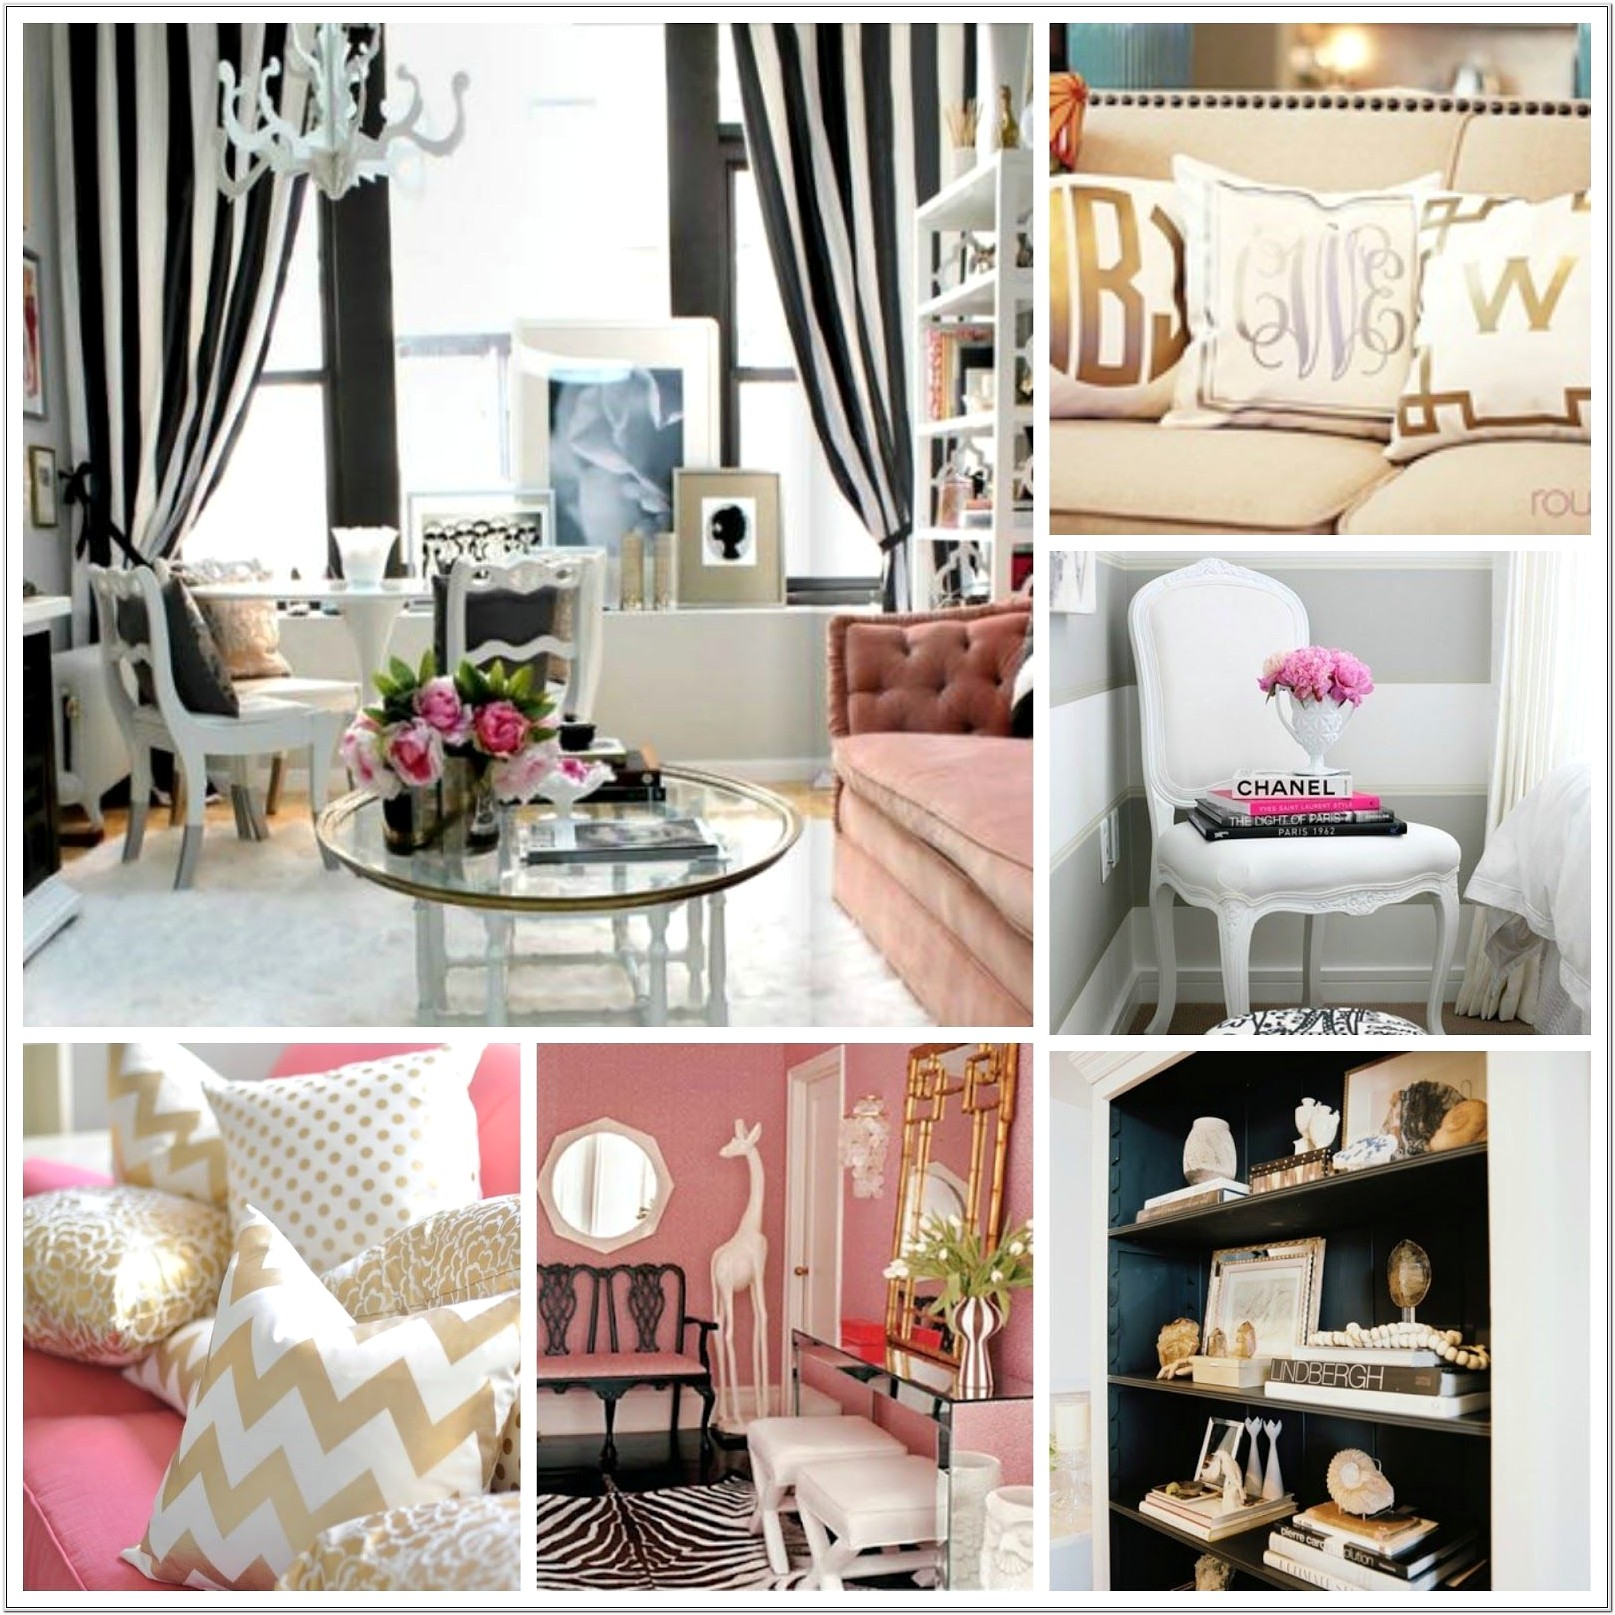 Chanel Bedroom Decor White Black And Gold